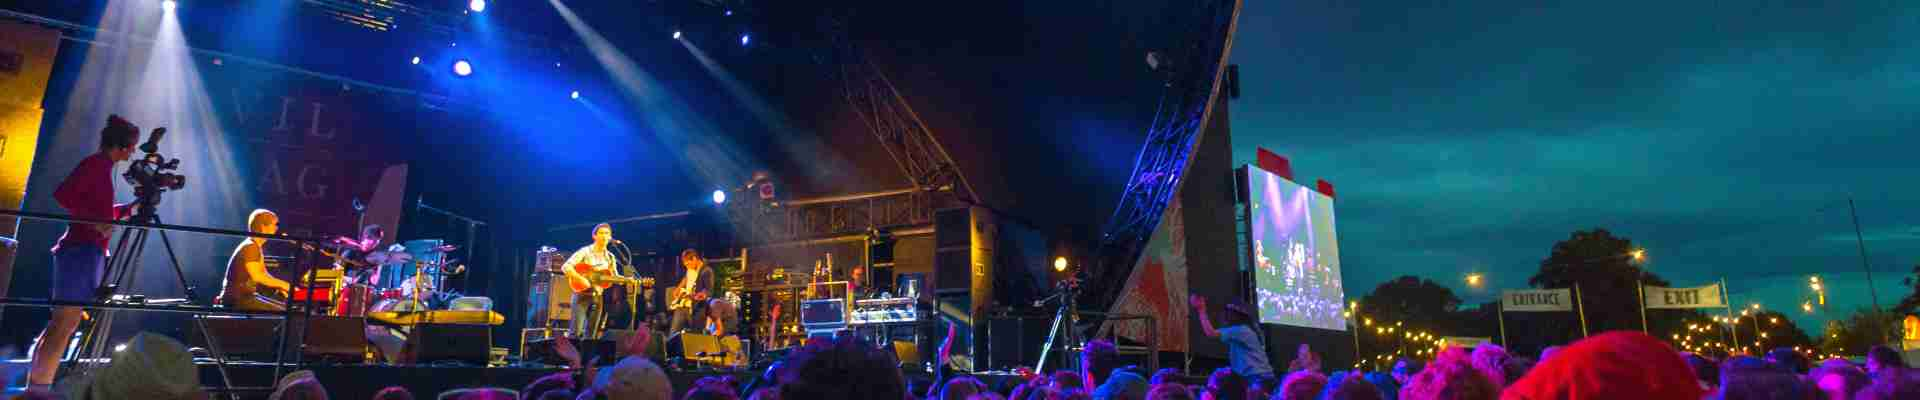 The Green Man Festival in August hosts a wide music spectrum as well as comedy, cinema, literature a